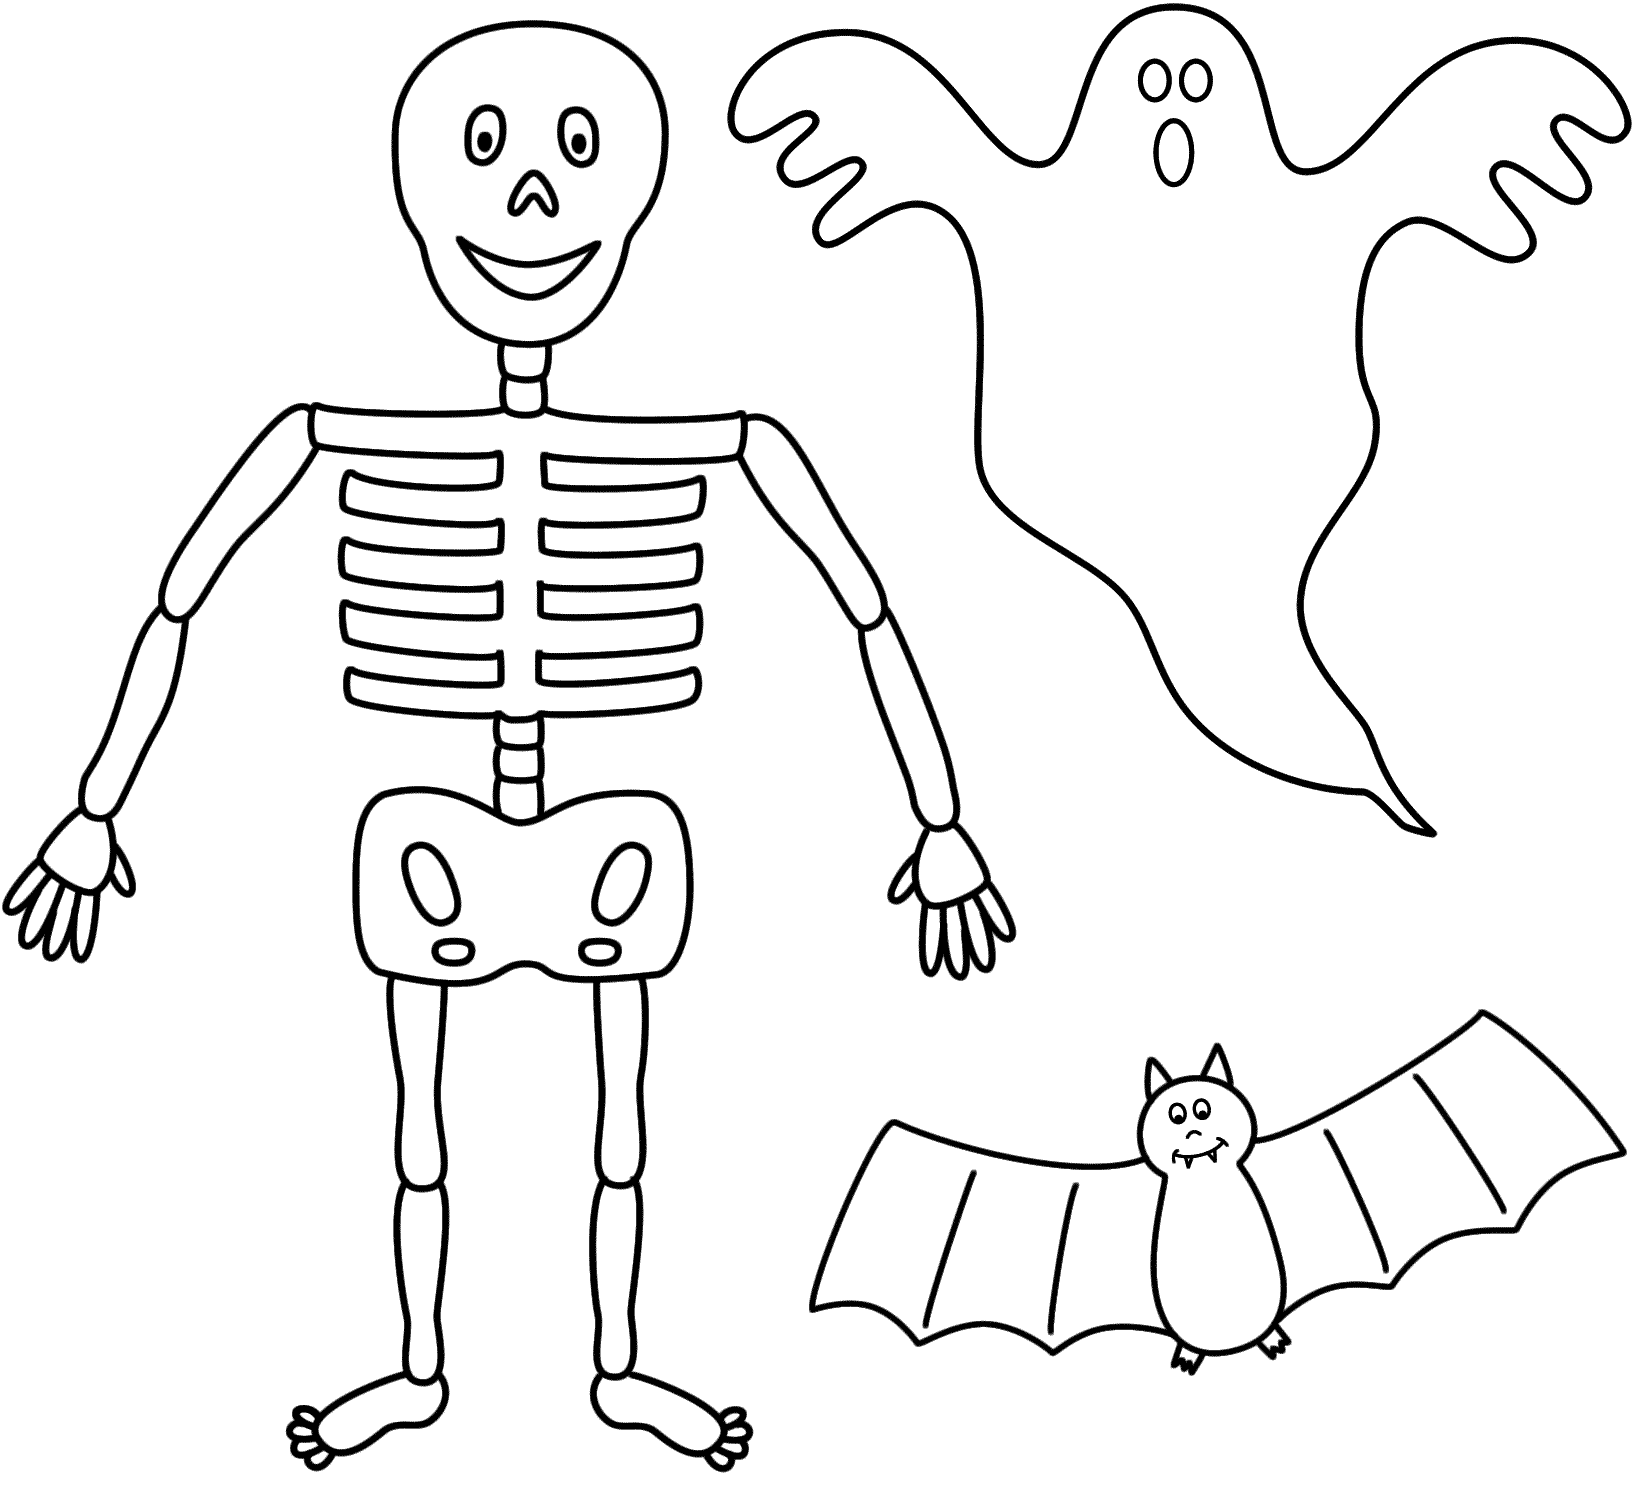 Printable skeleton template cut out clipart best for Skeleton template to cut out